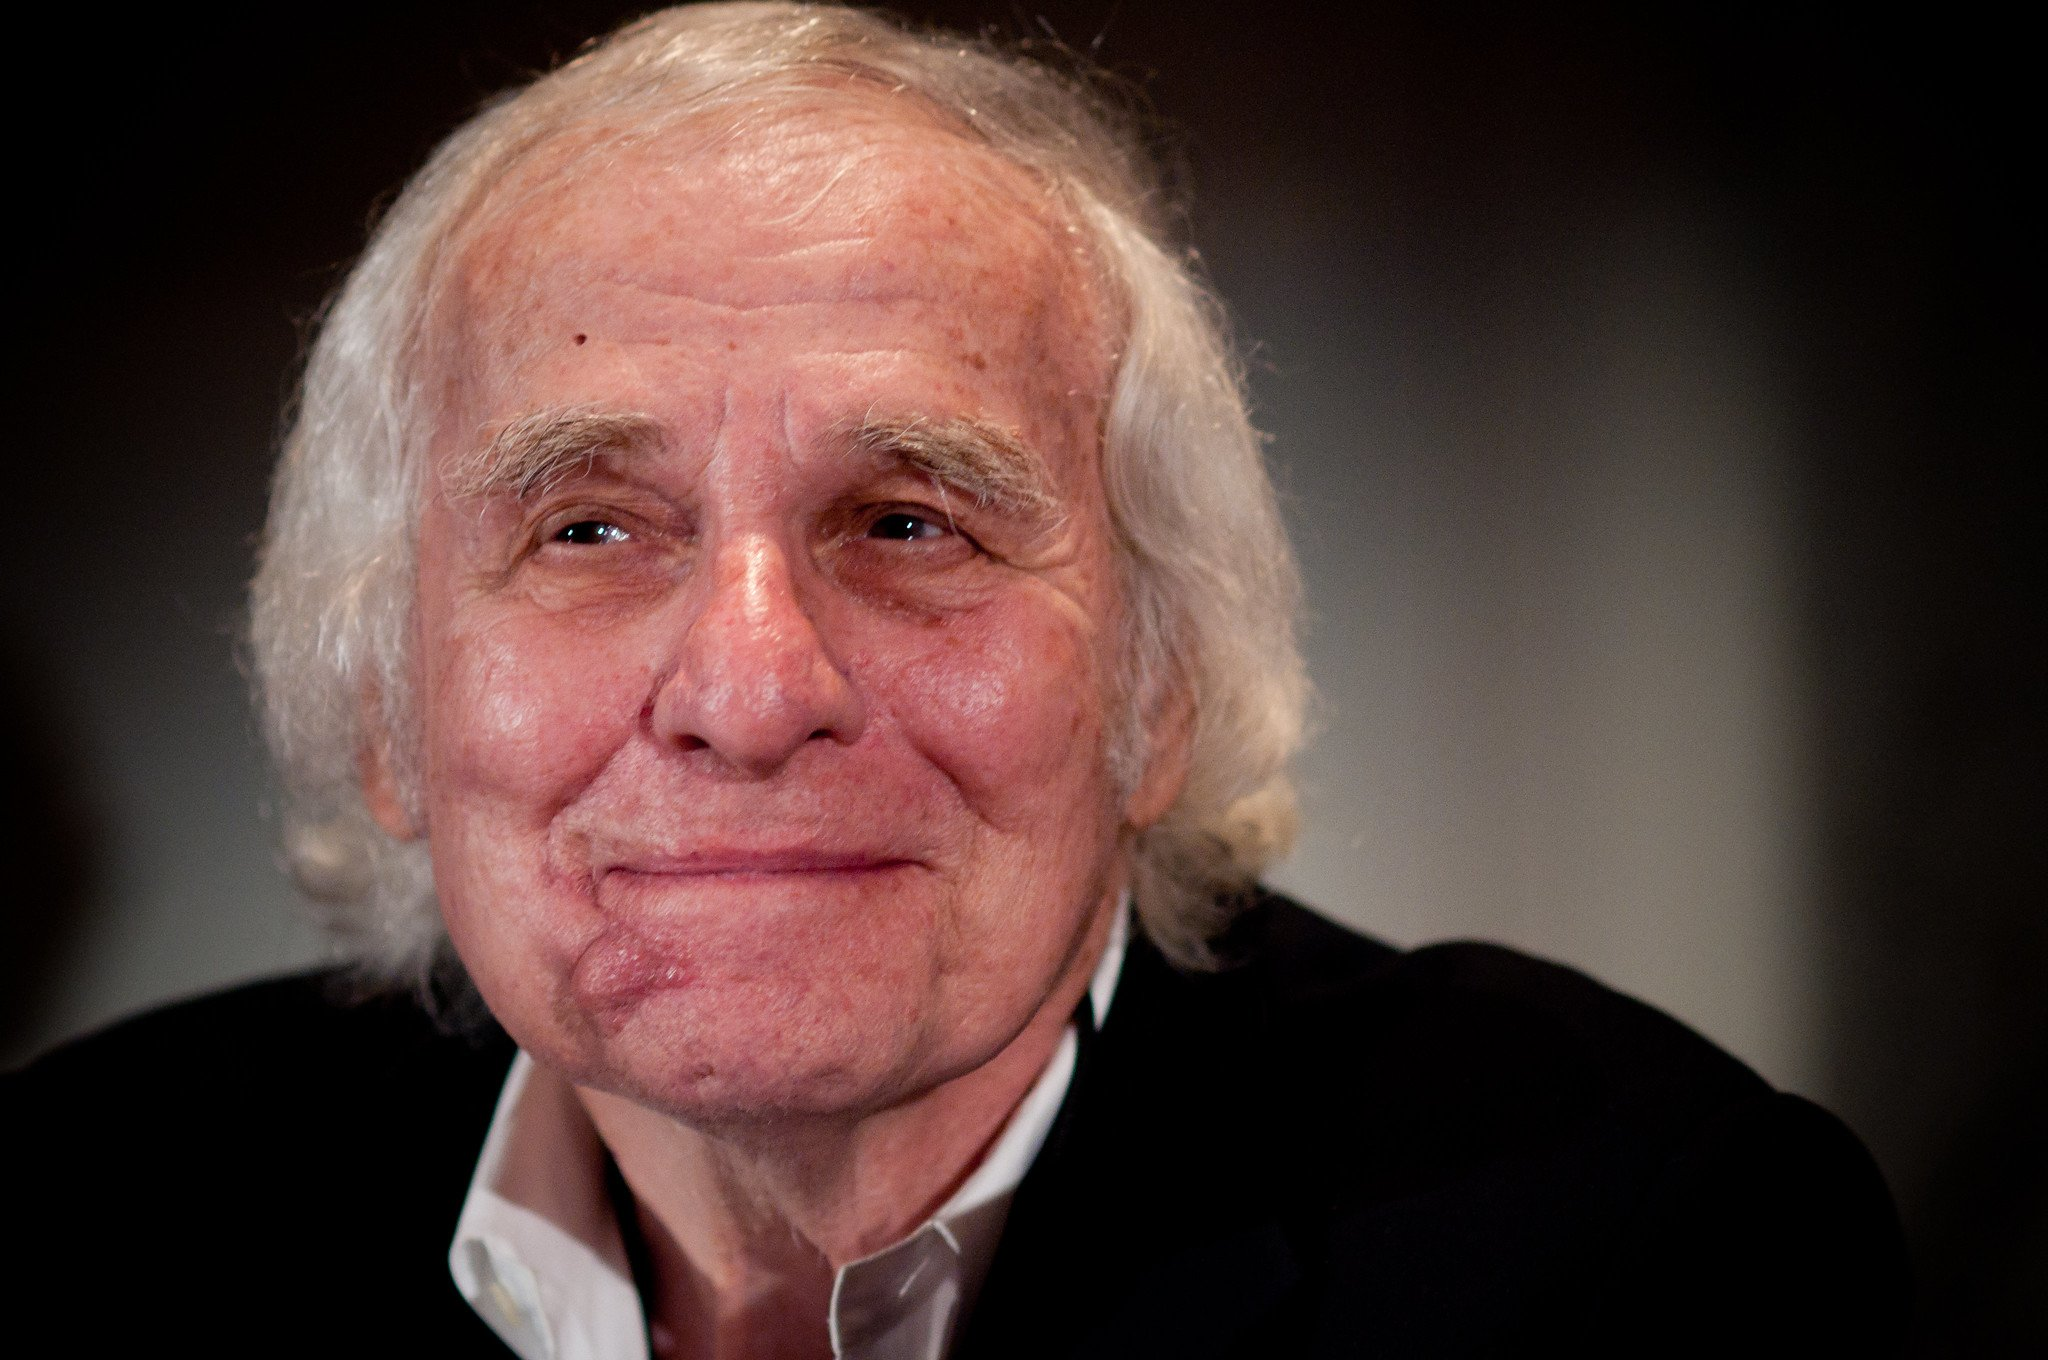 Mort Drucker at the New York Comic Con-9 onOctober 8, 2010 | Photo: Flickr/Marnie Joyce